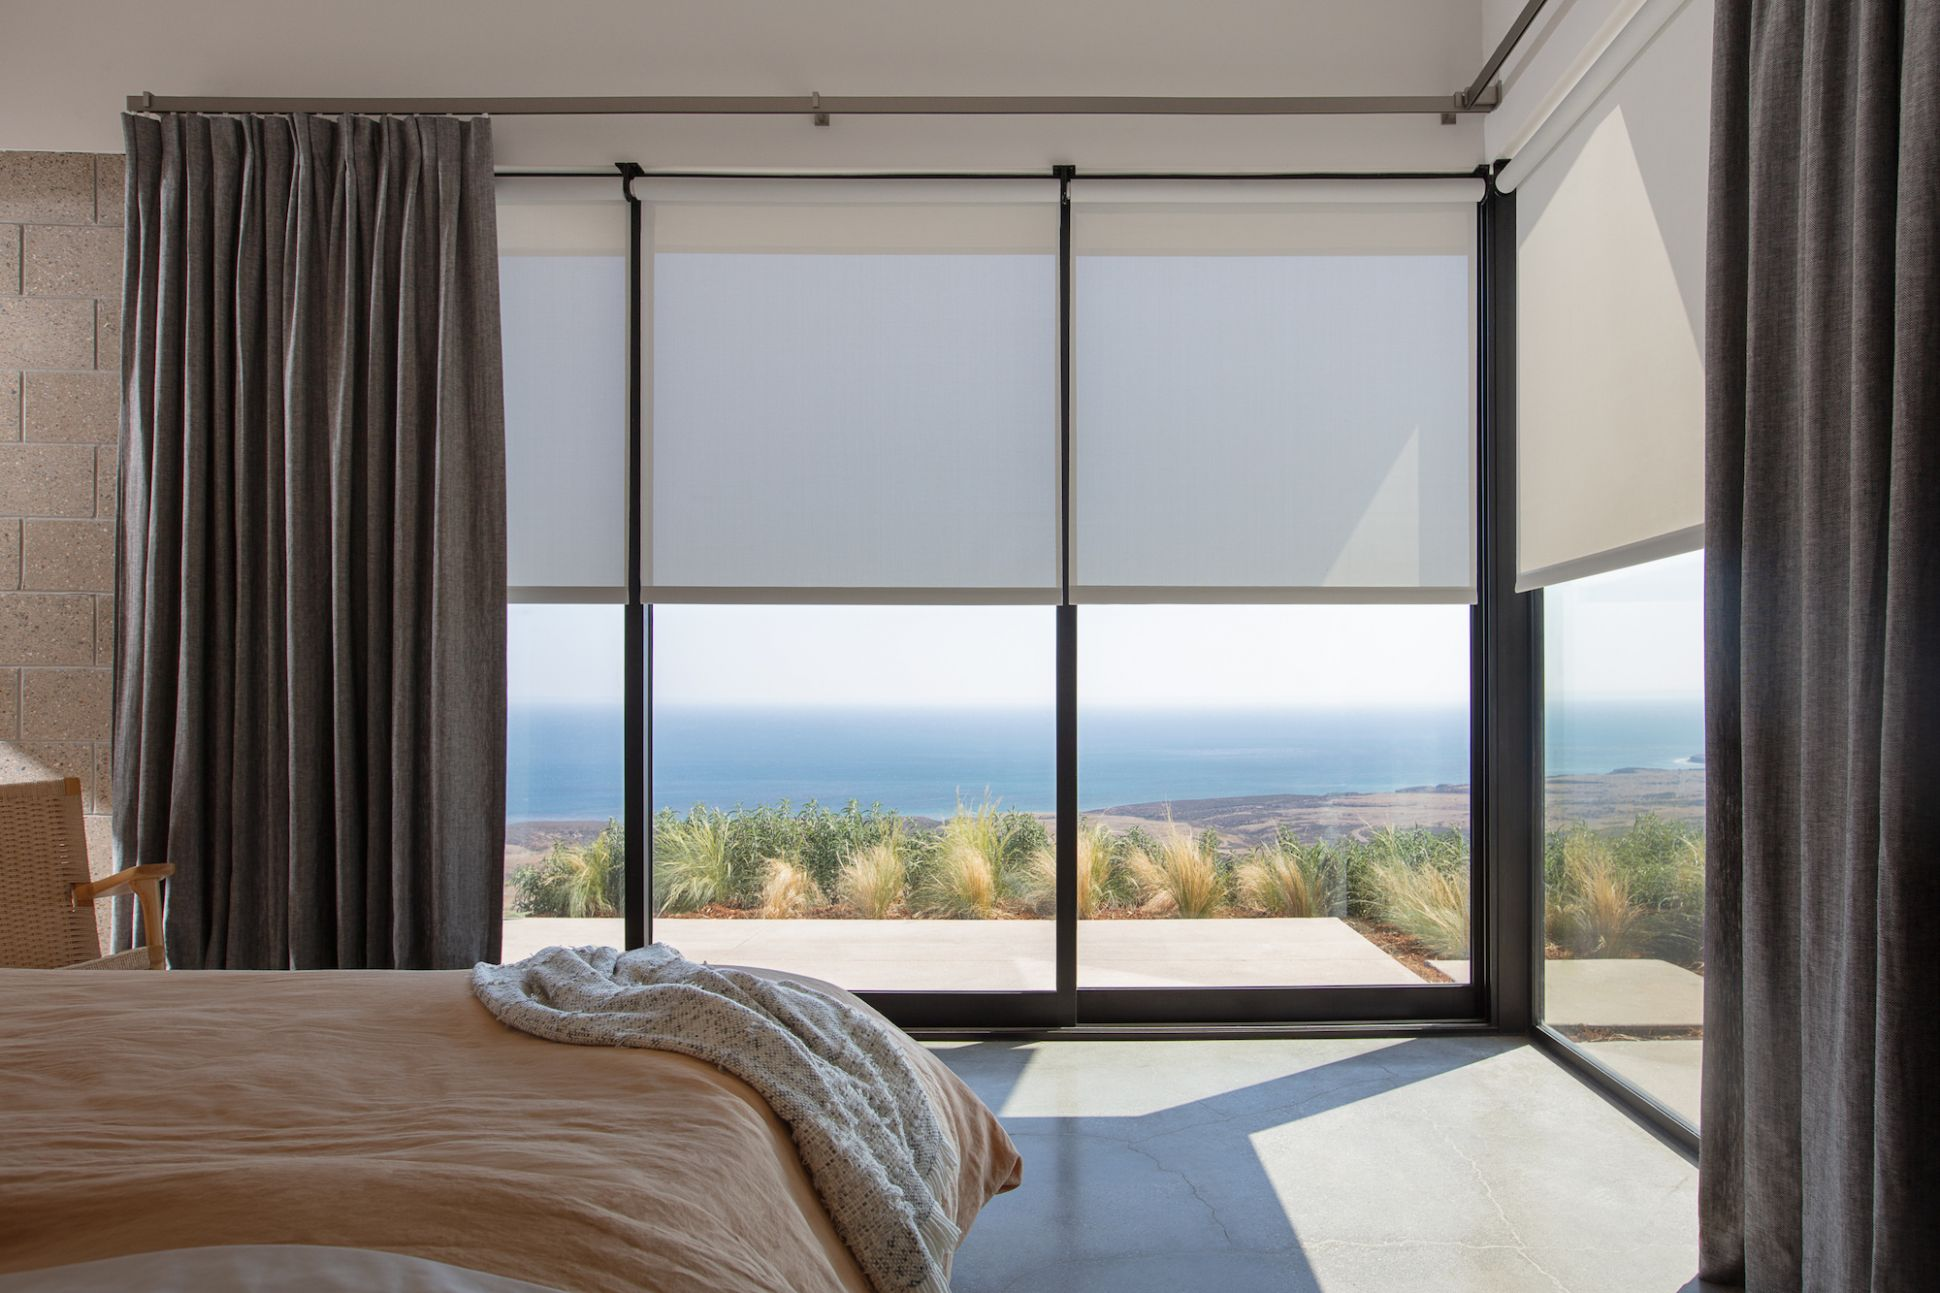 Window Treatments for Sliding Glass & Patio Doors | The Shade Store - window dressing ideas for patio doors